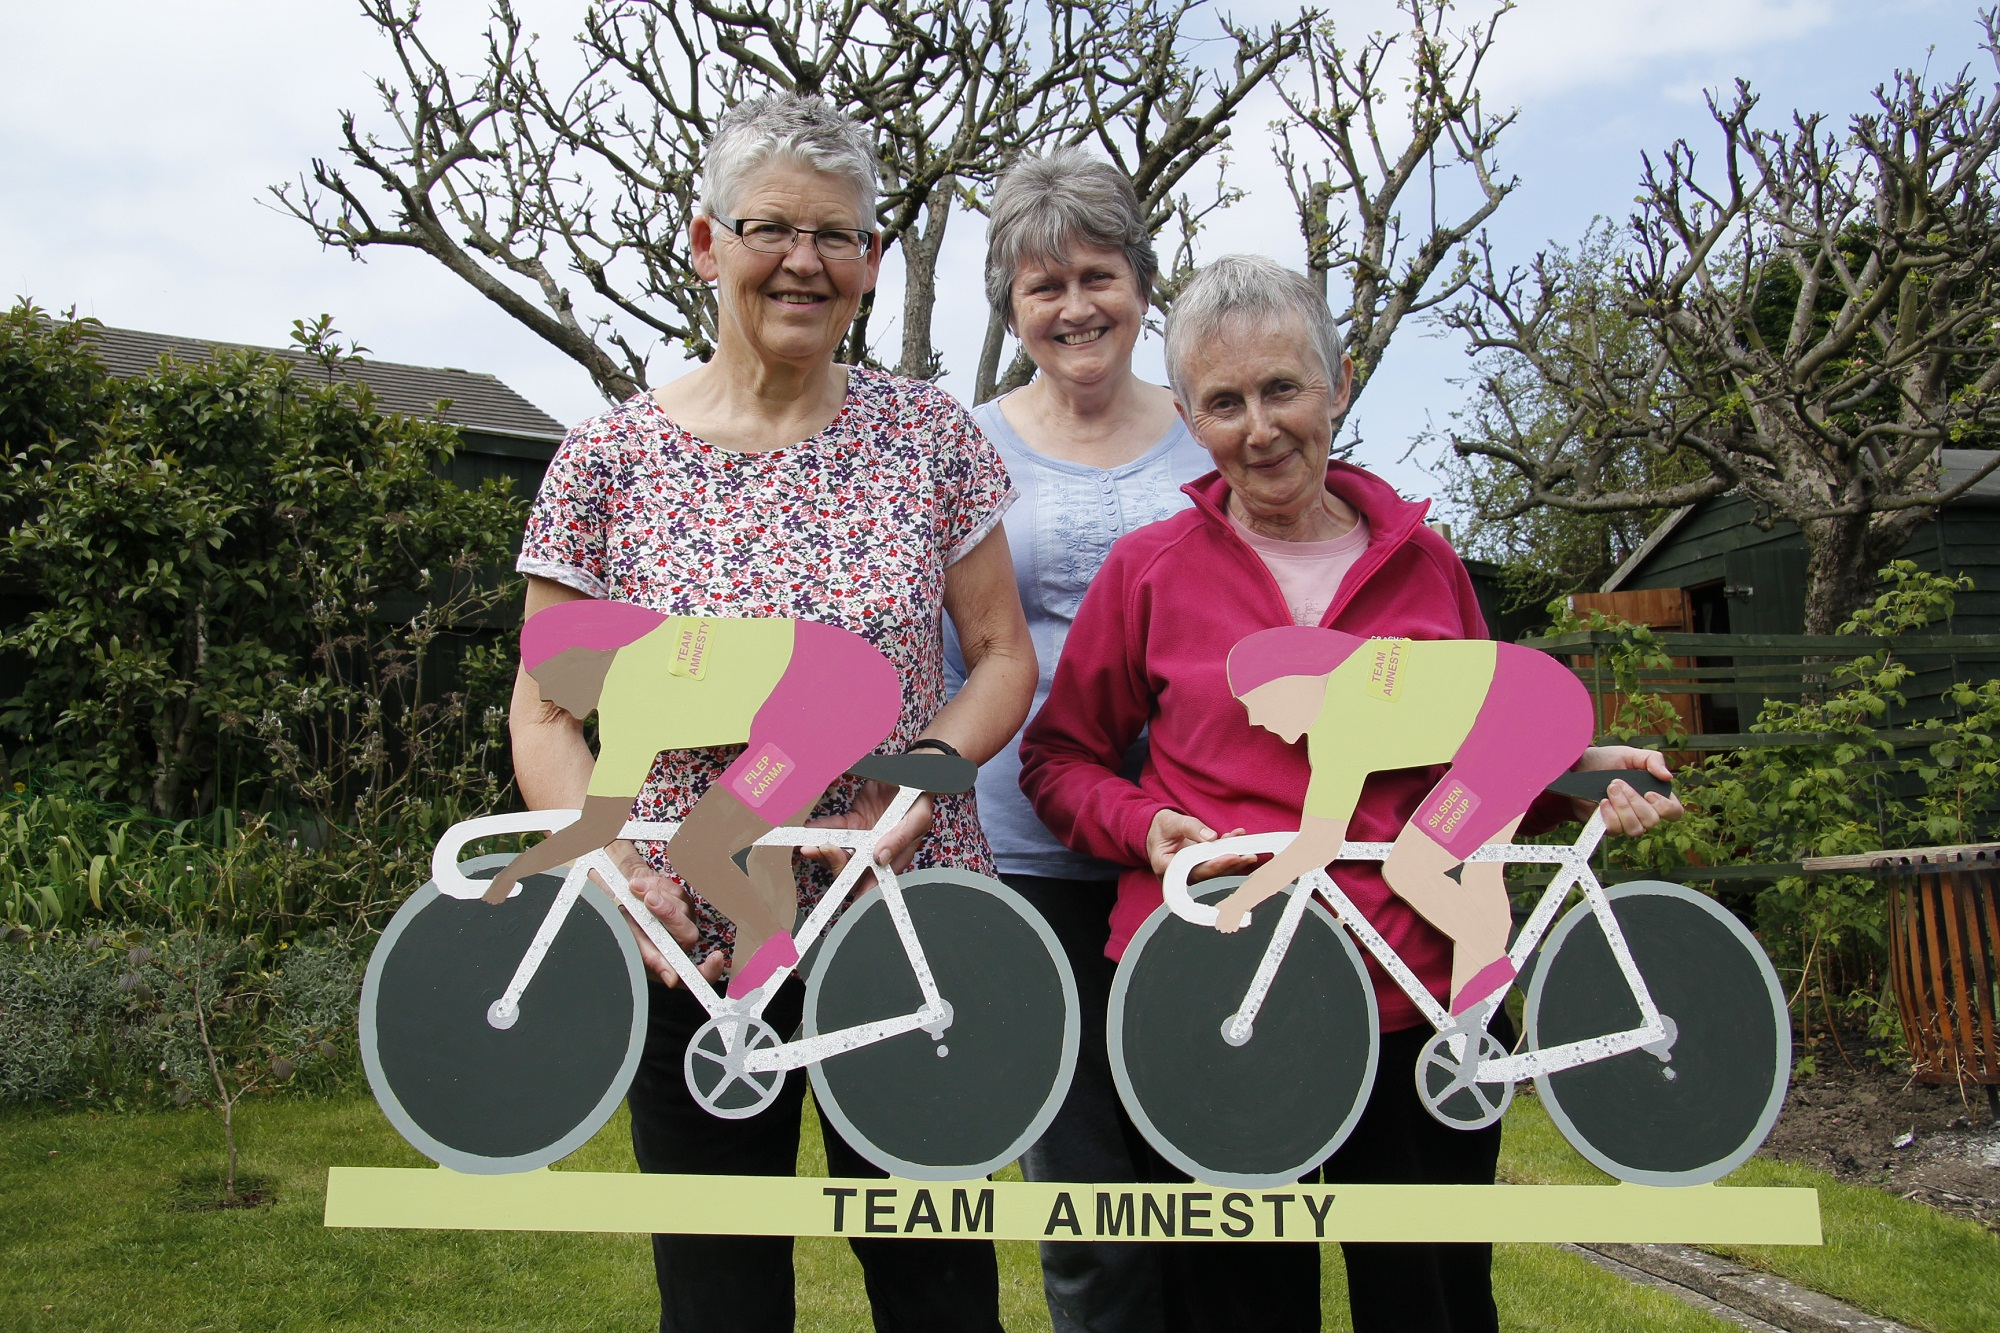 Alison Tribe, Anna Young and June Brennan with the Silsden Amnesty bike display